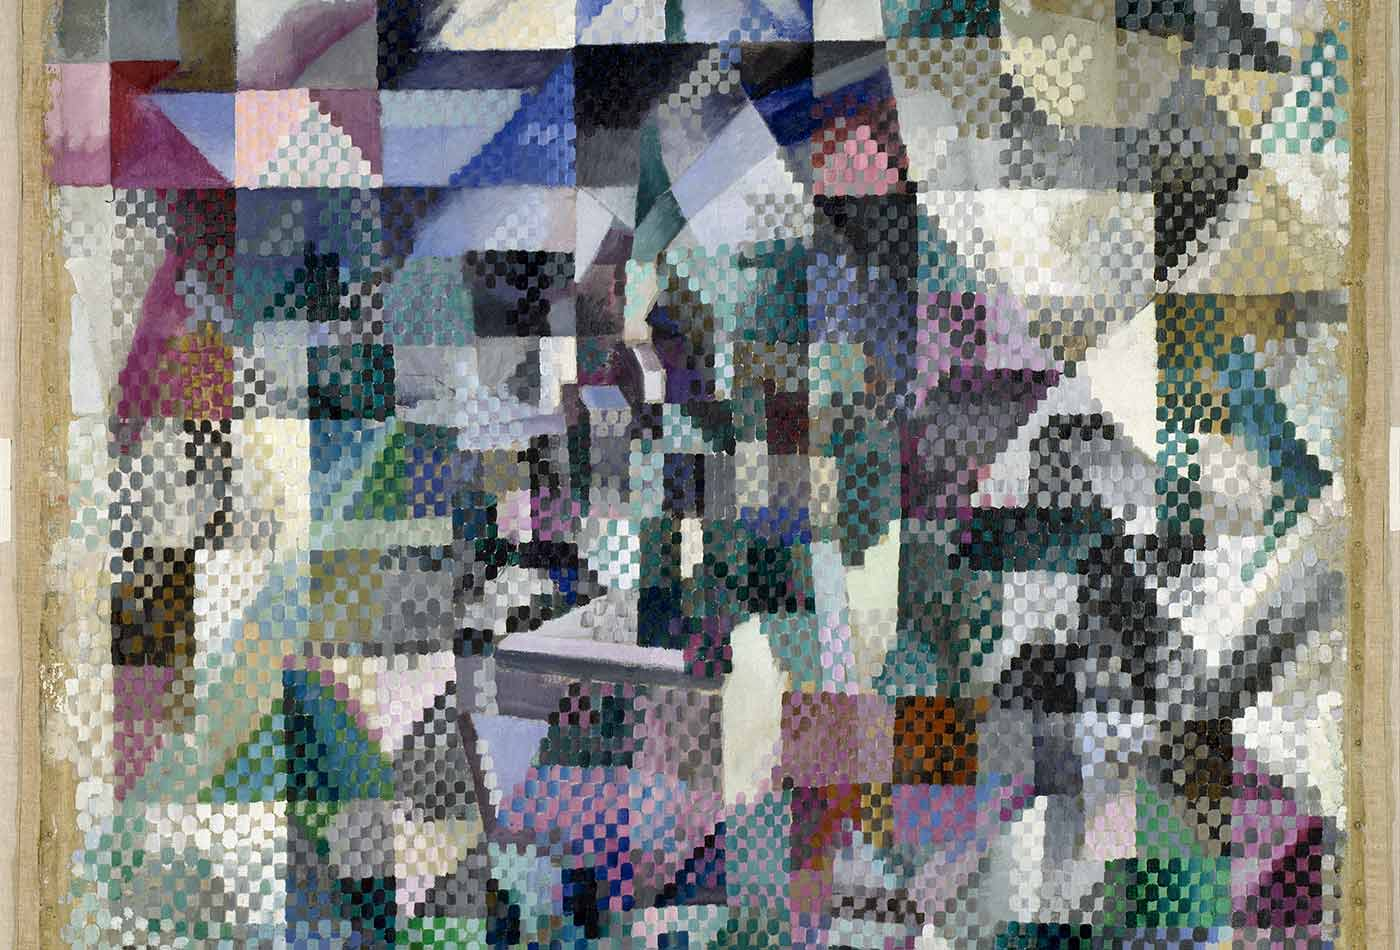 """""""Window on the City No. 3,"""" by Robert Delaunay, 1911-12."""